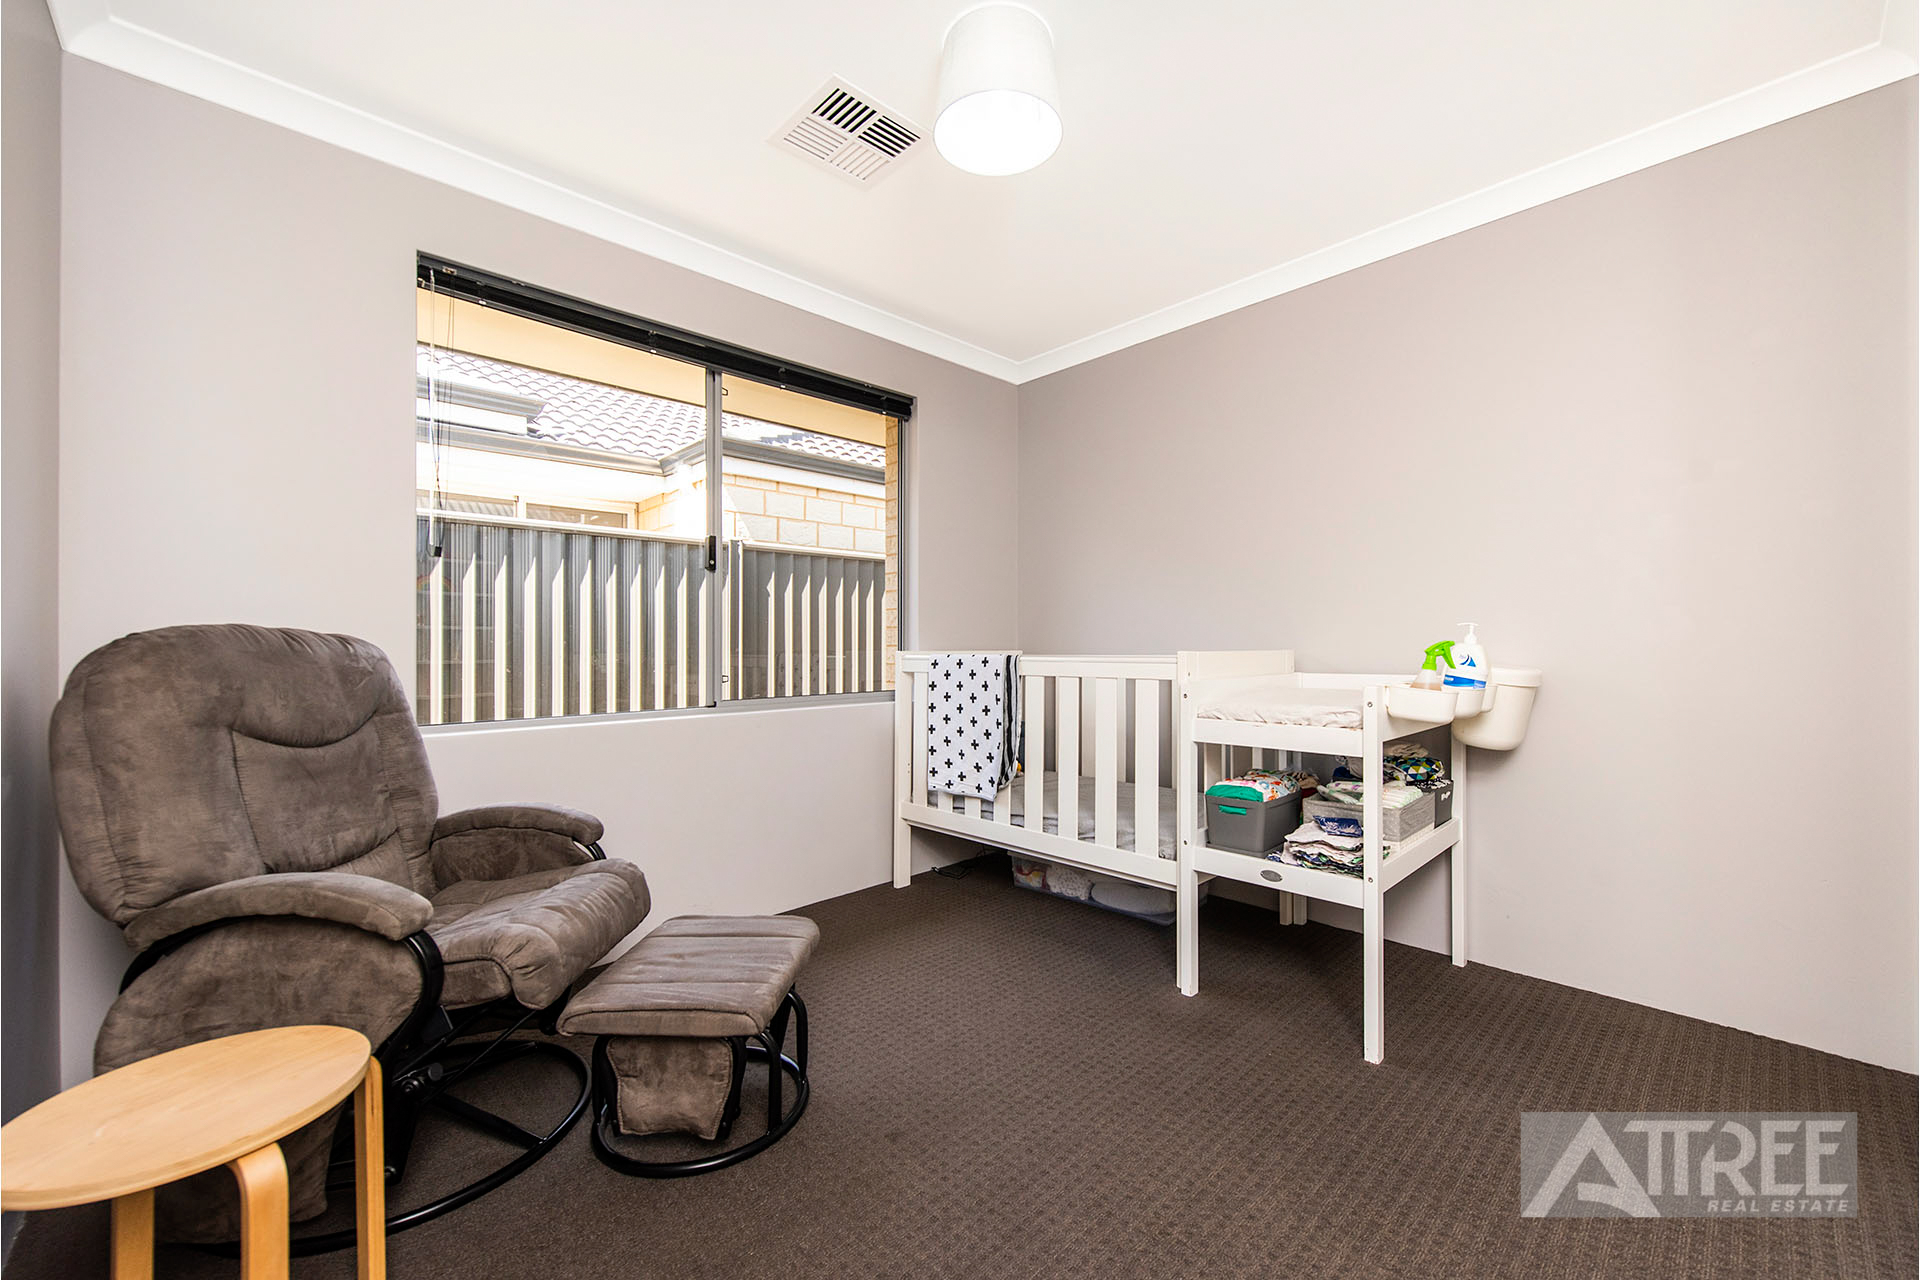 Property for sale in HARRISDALE, 74 Welcome Meander : Attree Real Estate